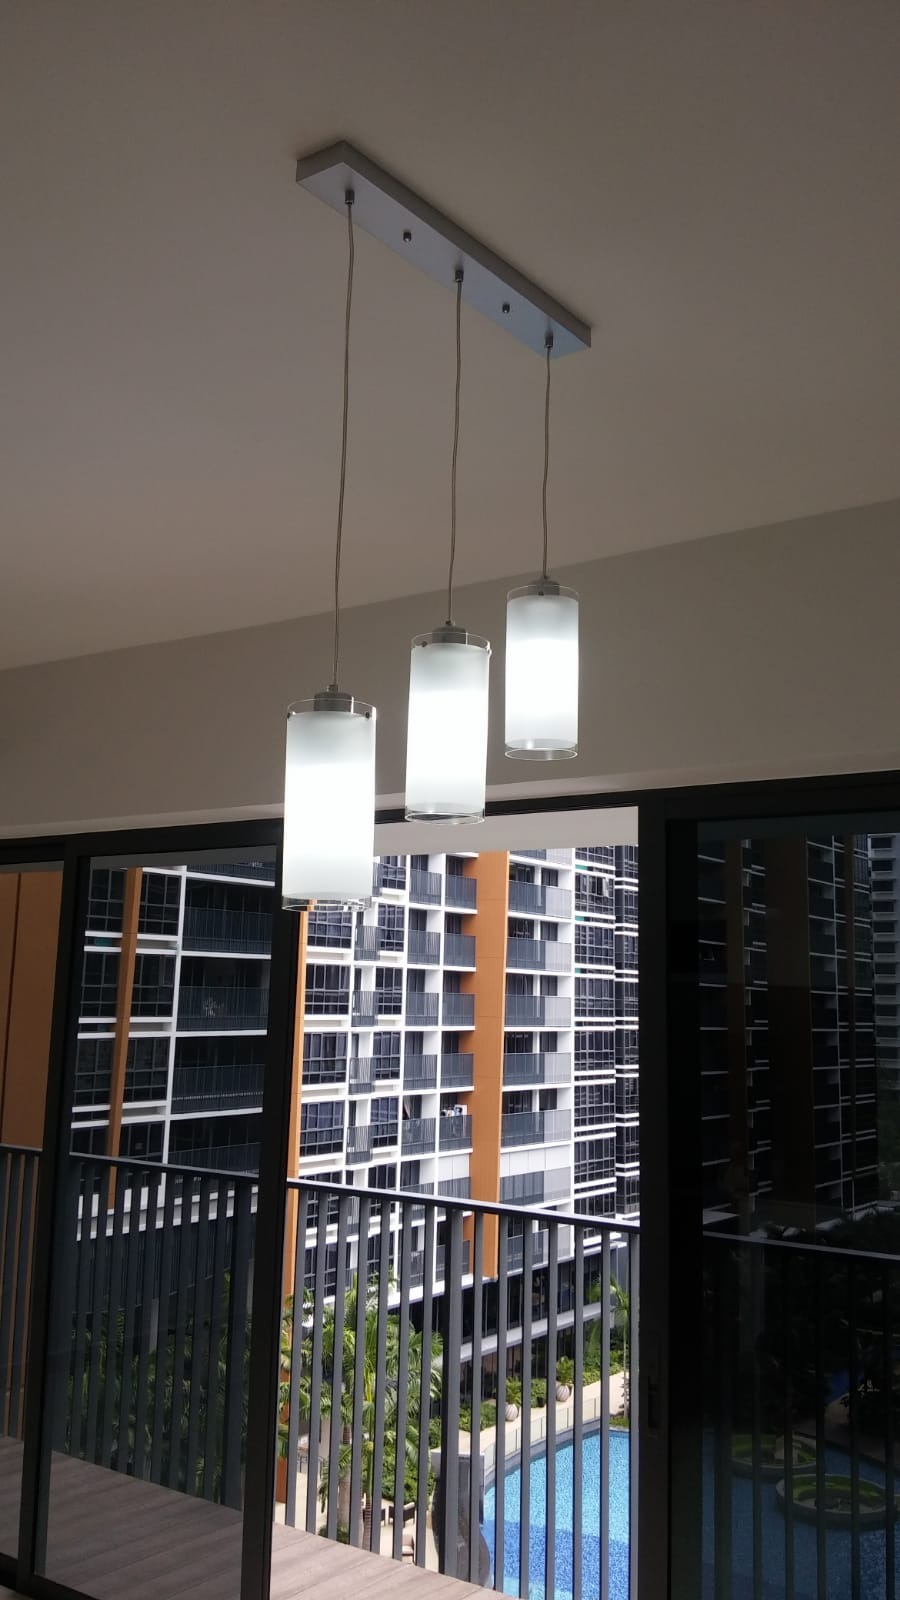 10-led-glass-hanging-lamp-in-dining-room-condo-sembawang-lighting-house.jpg